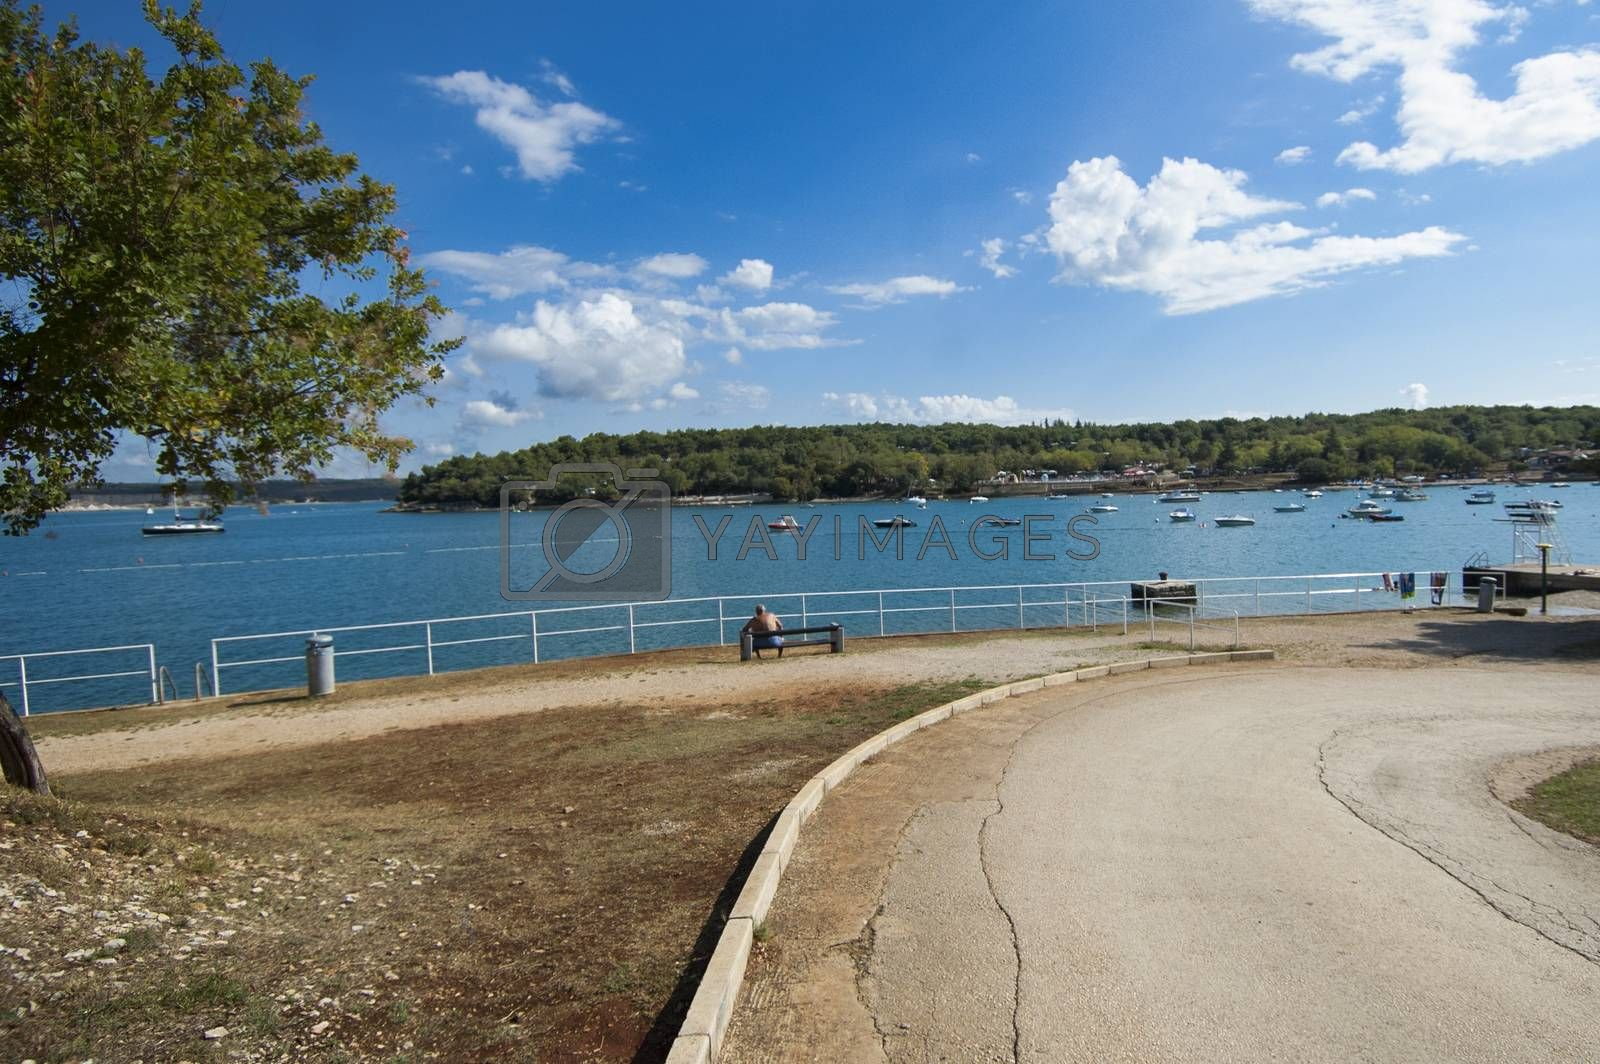 panoramic view of a beach in Porec